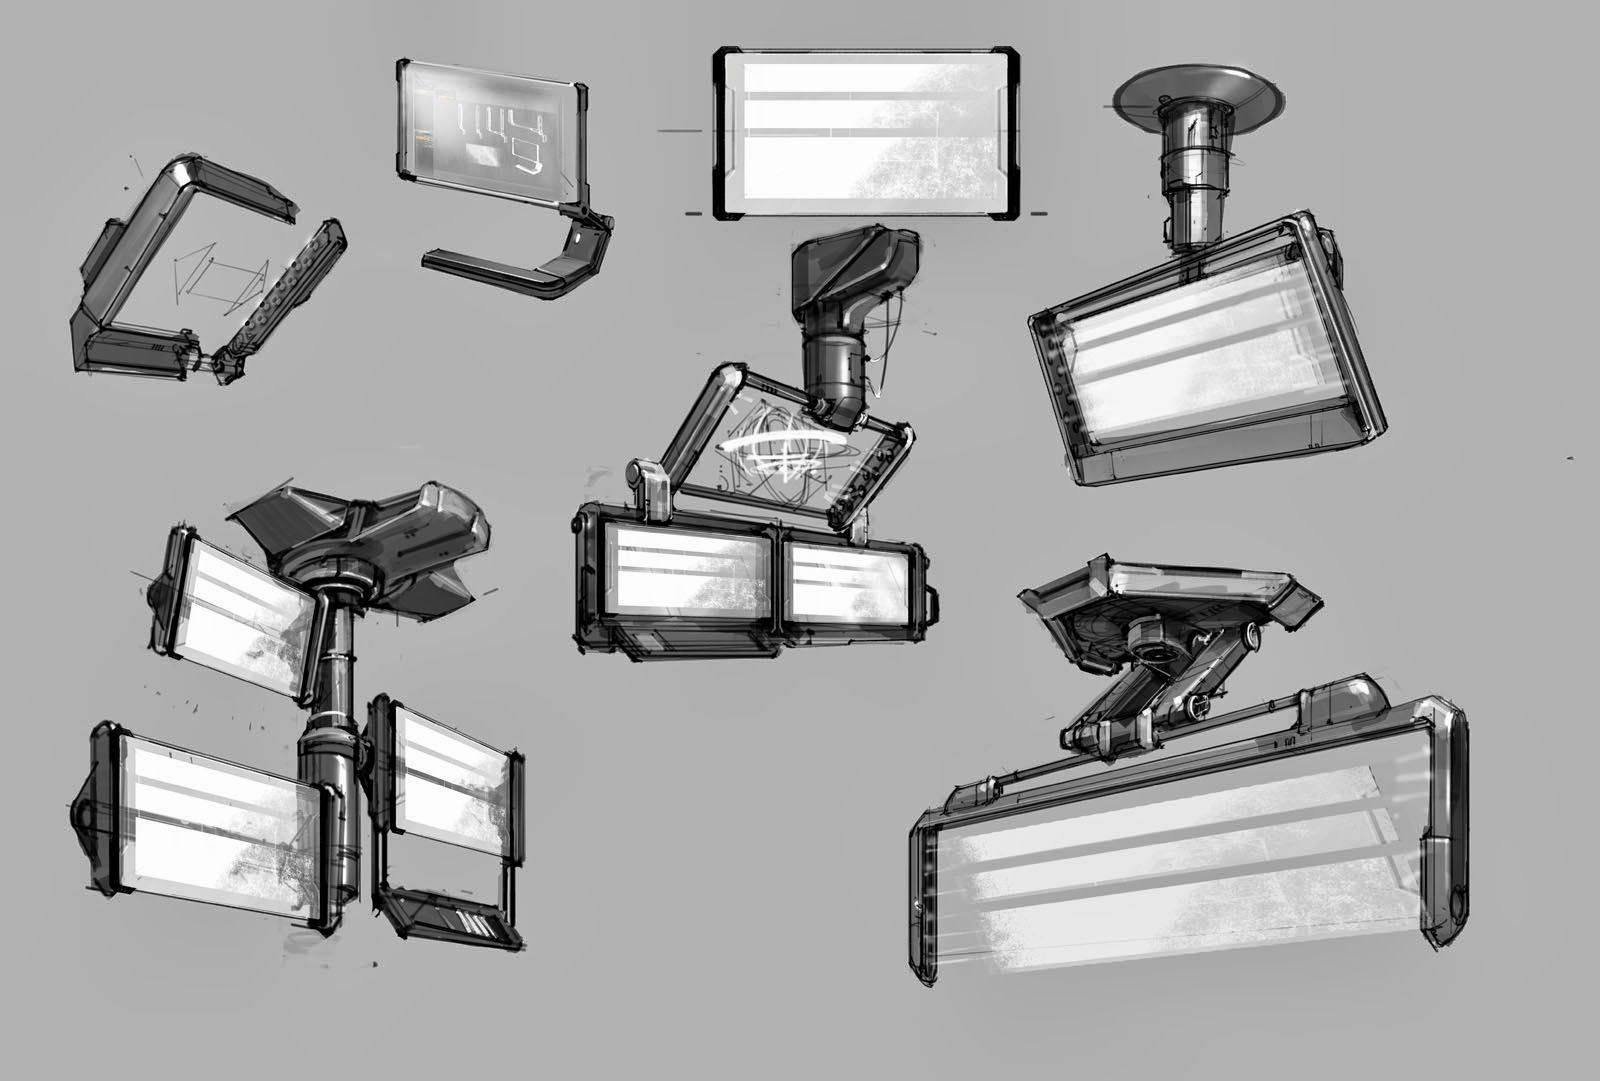 Potential Things Sci Fi Props Concept Game Concept Art